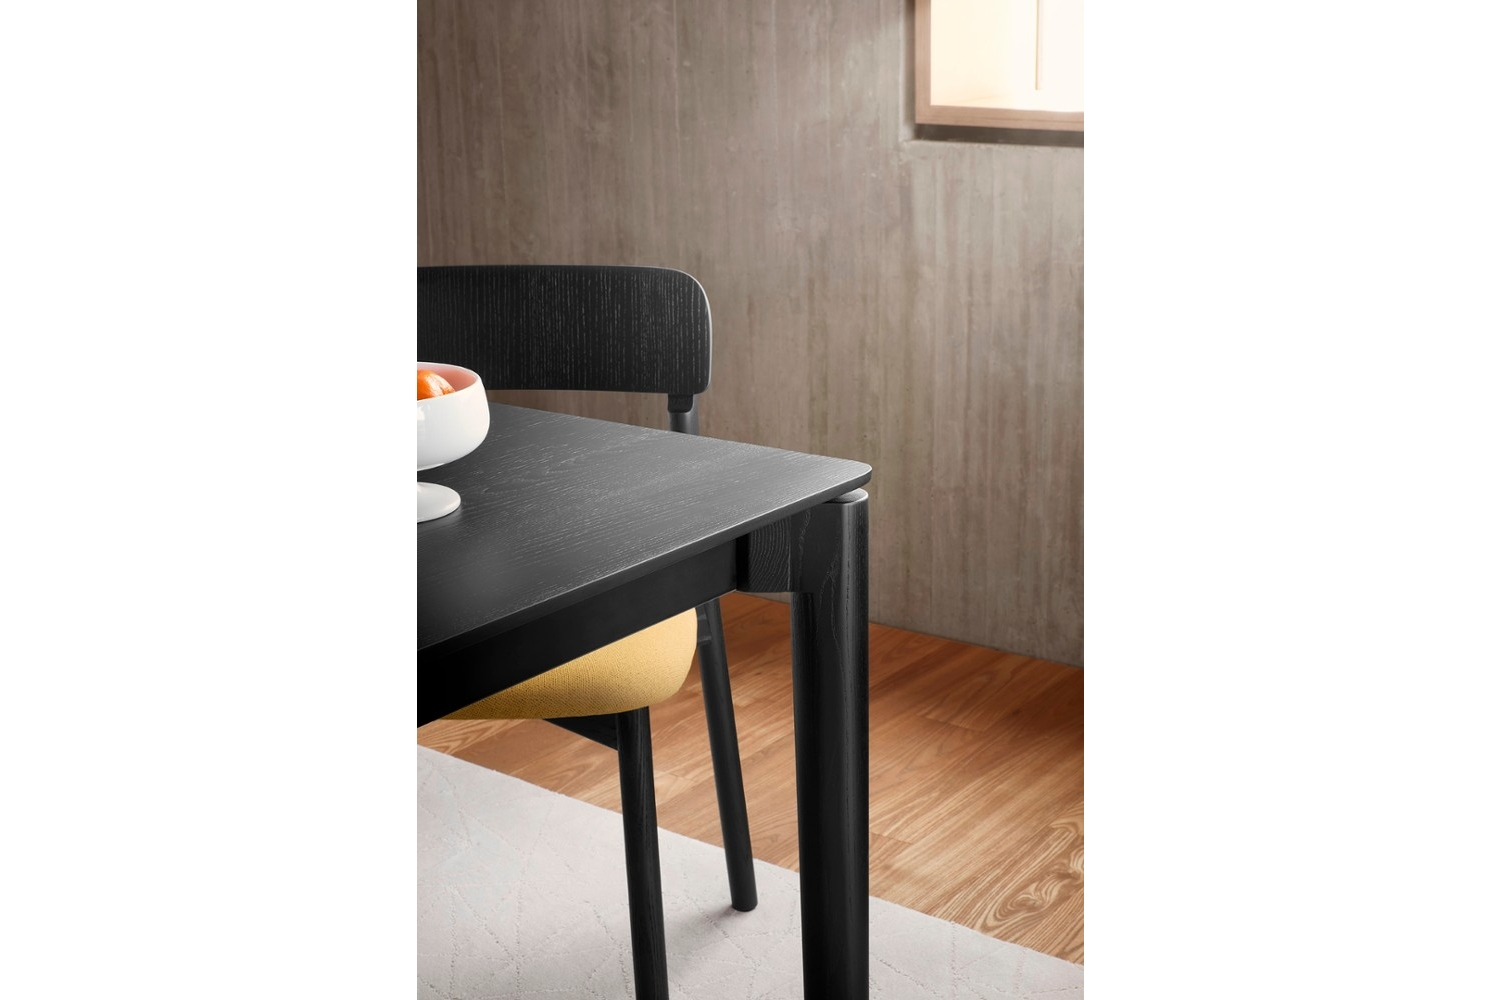 Nordic Extension Dining Table cs4133 11 Nordic Extension Dining Table cs4133 11.jpg Nordic Extension Dining Table